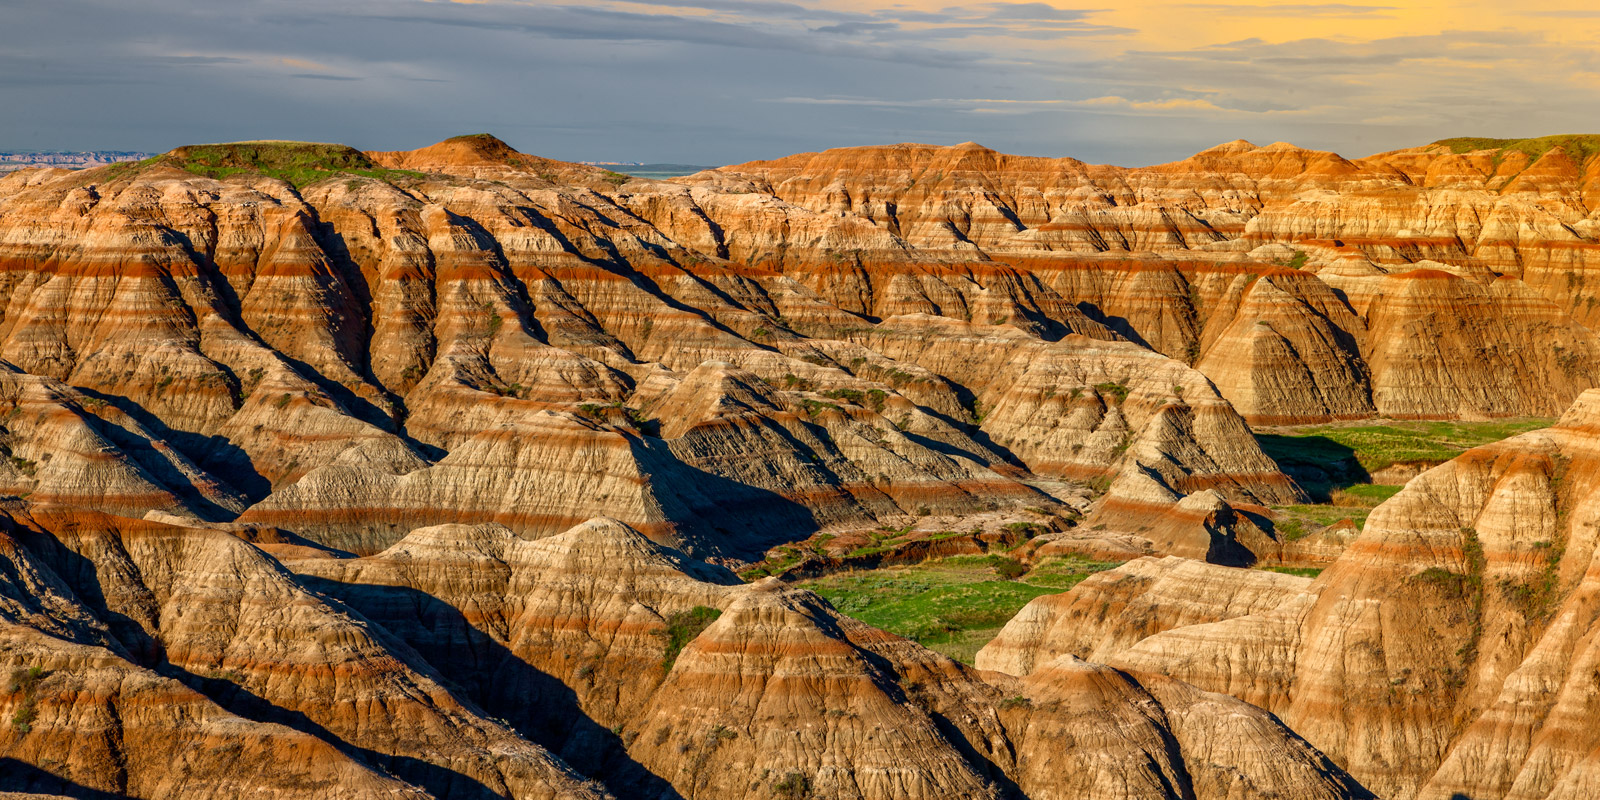 South Dakota, Badlands, National Park, Canyon, , limited edition, photograph, fine art, landscape, photo